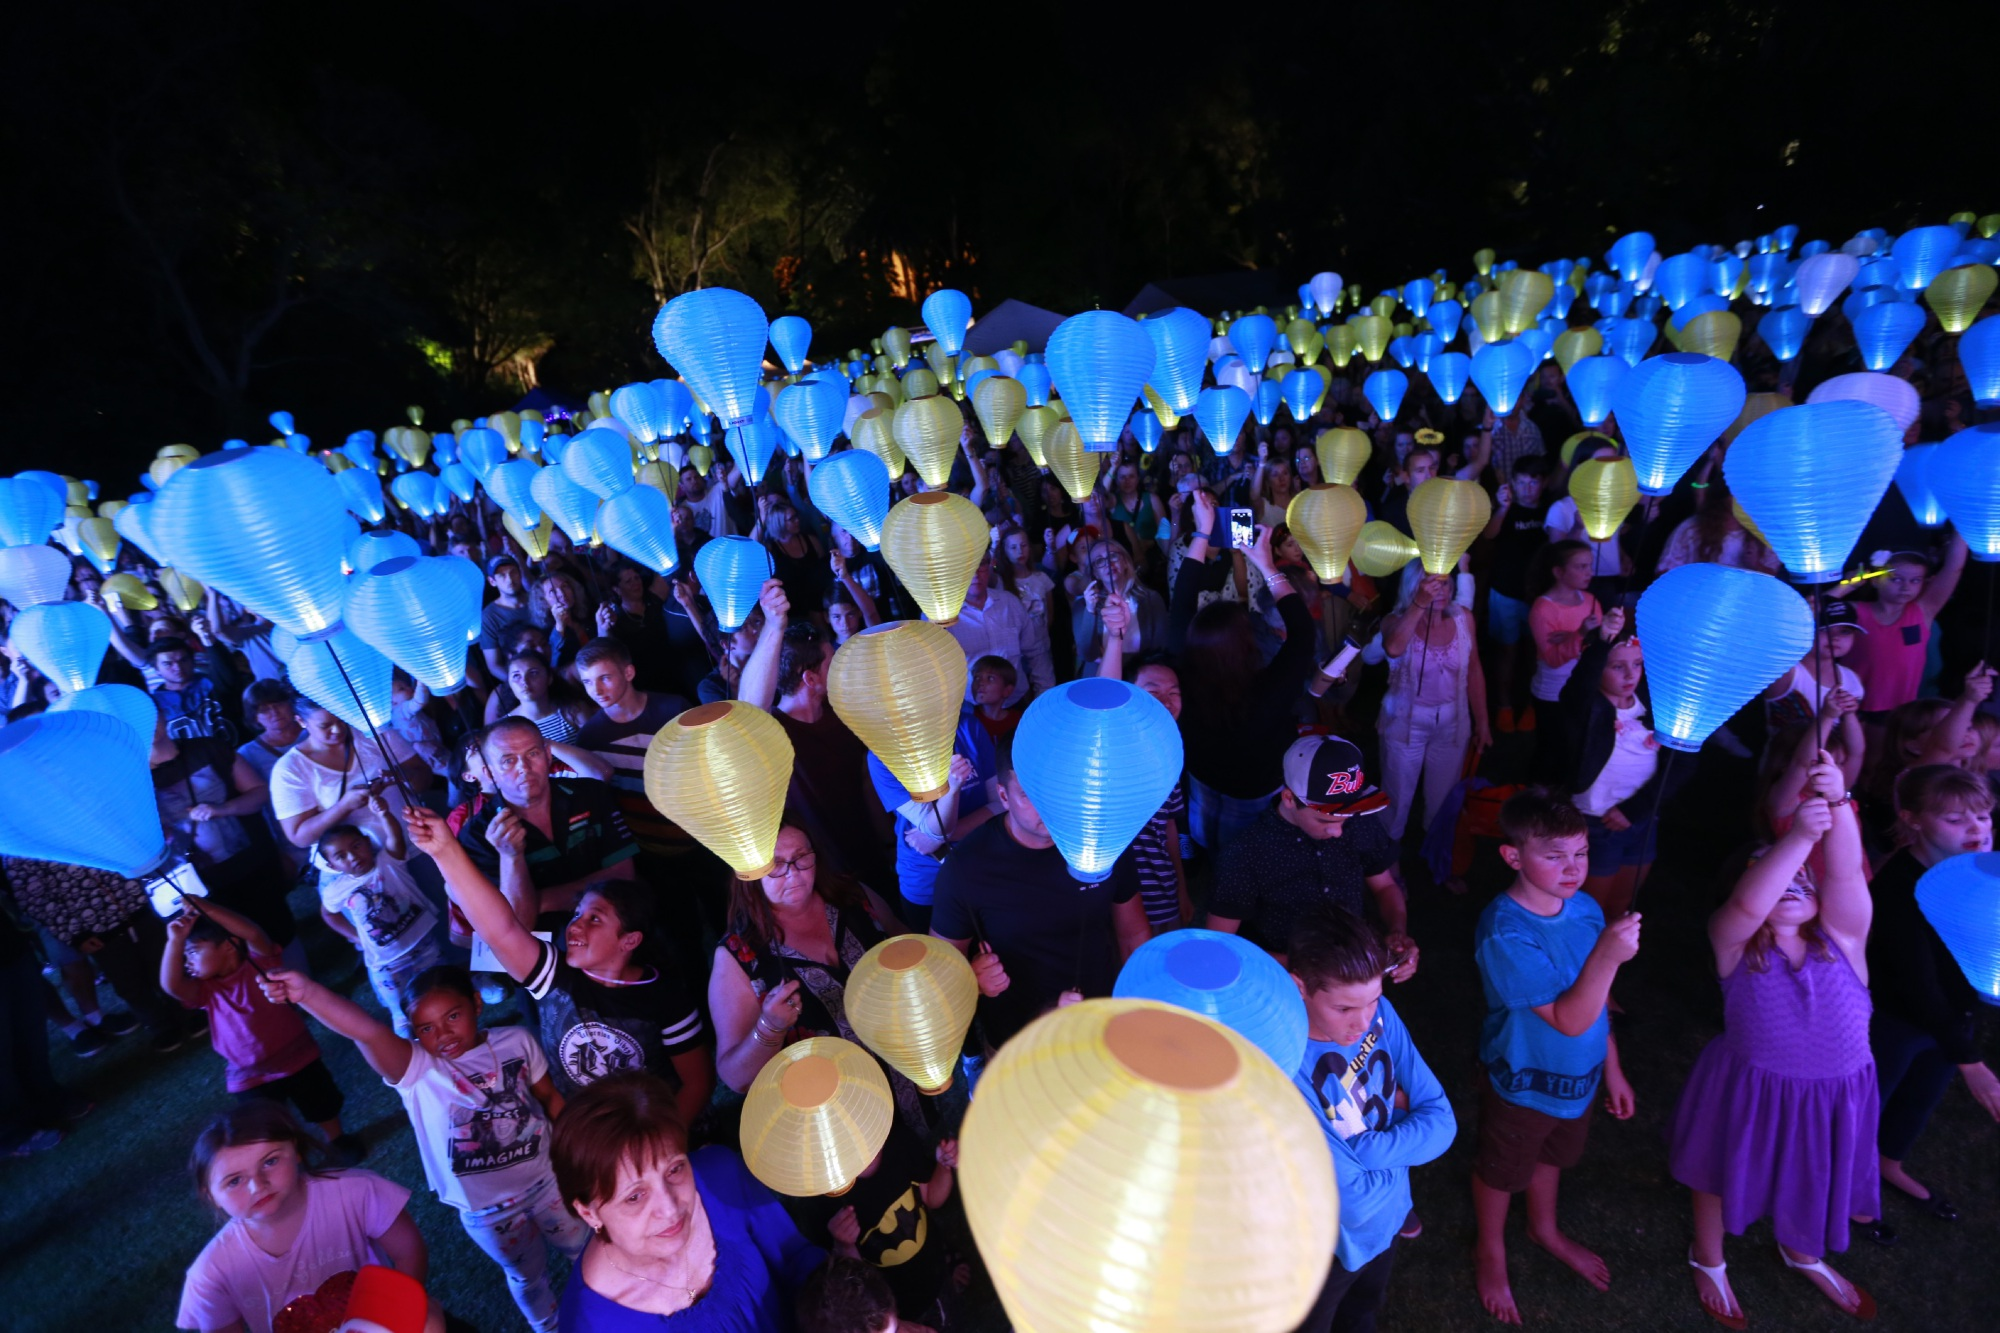 More than 1000 people gathered at UWA for the Light the Night event on Friday. Picture: Piotr Dancewicz.